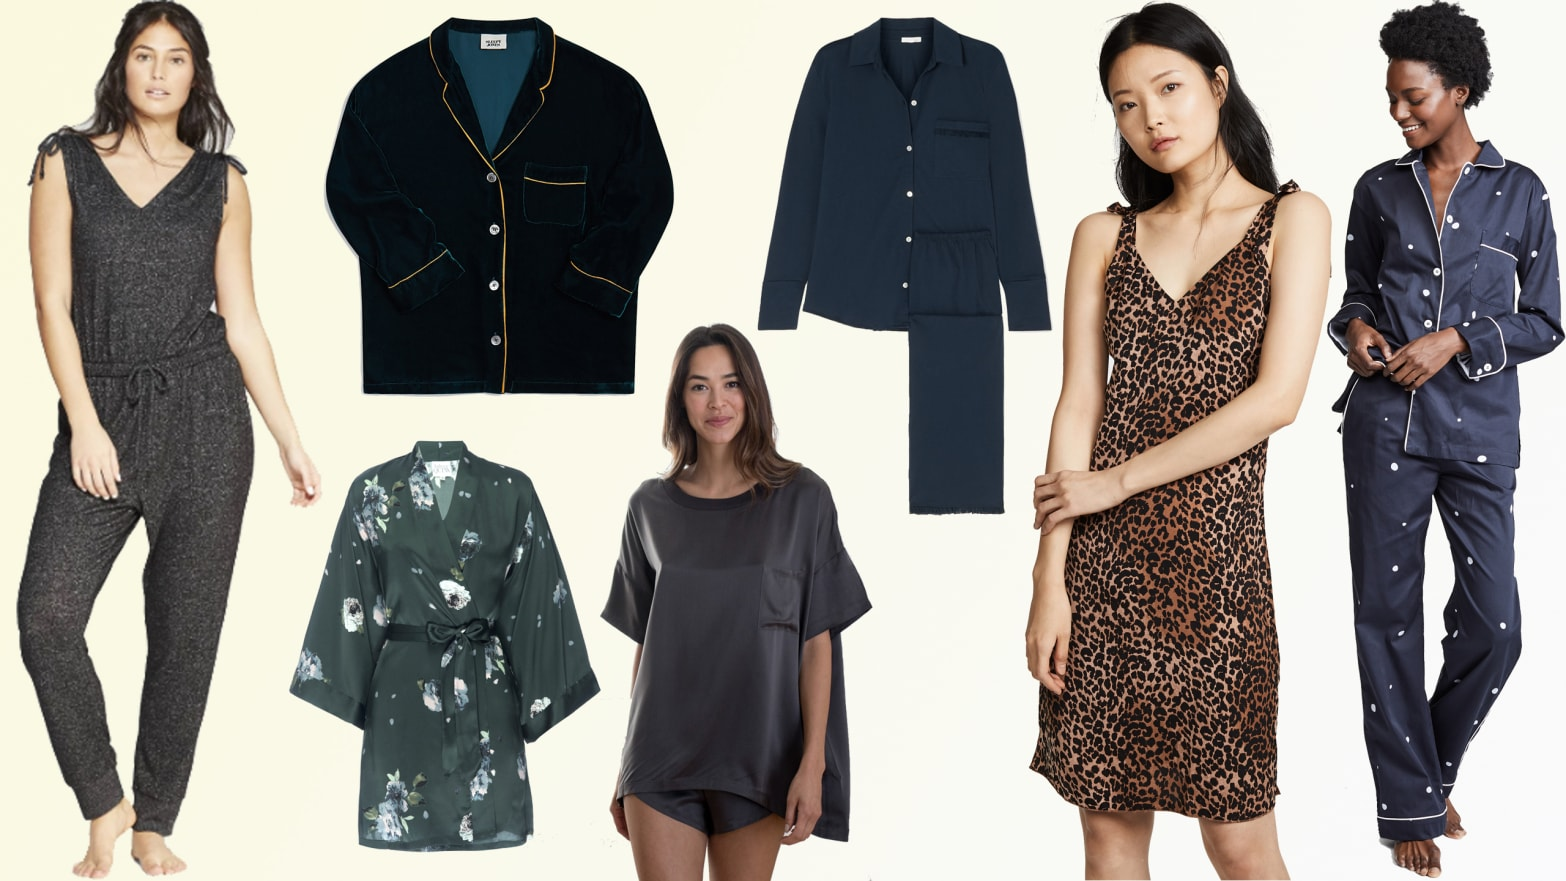 Lunya, Sleeper, Sleepy Jones, and More Elevated Sleepwear Brands You Should Know About